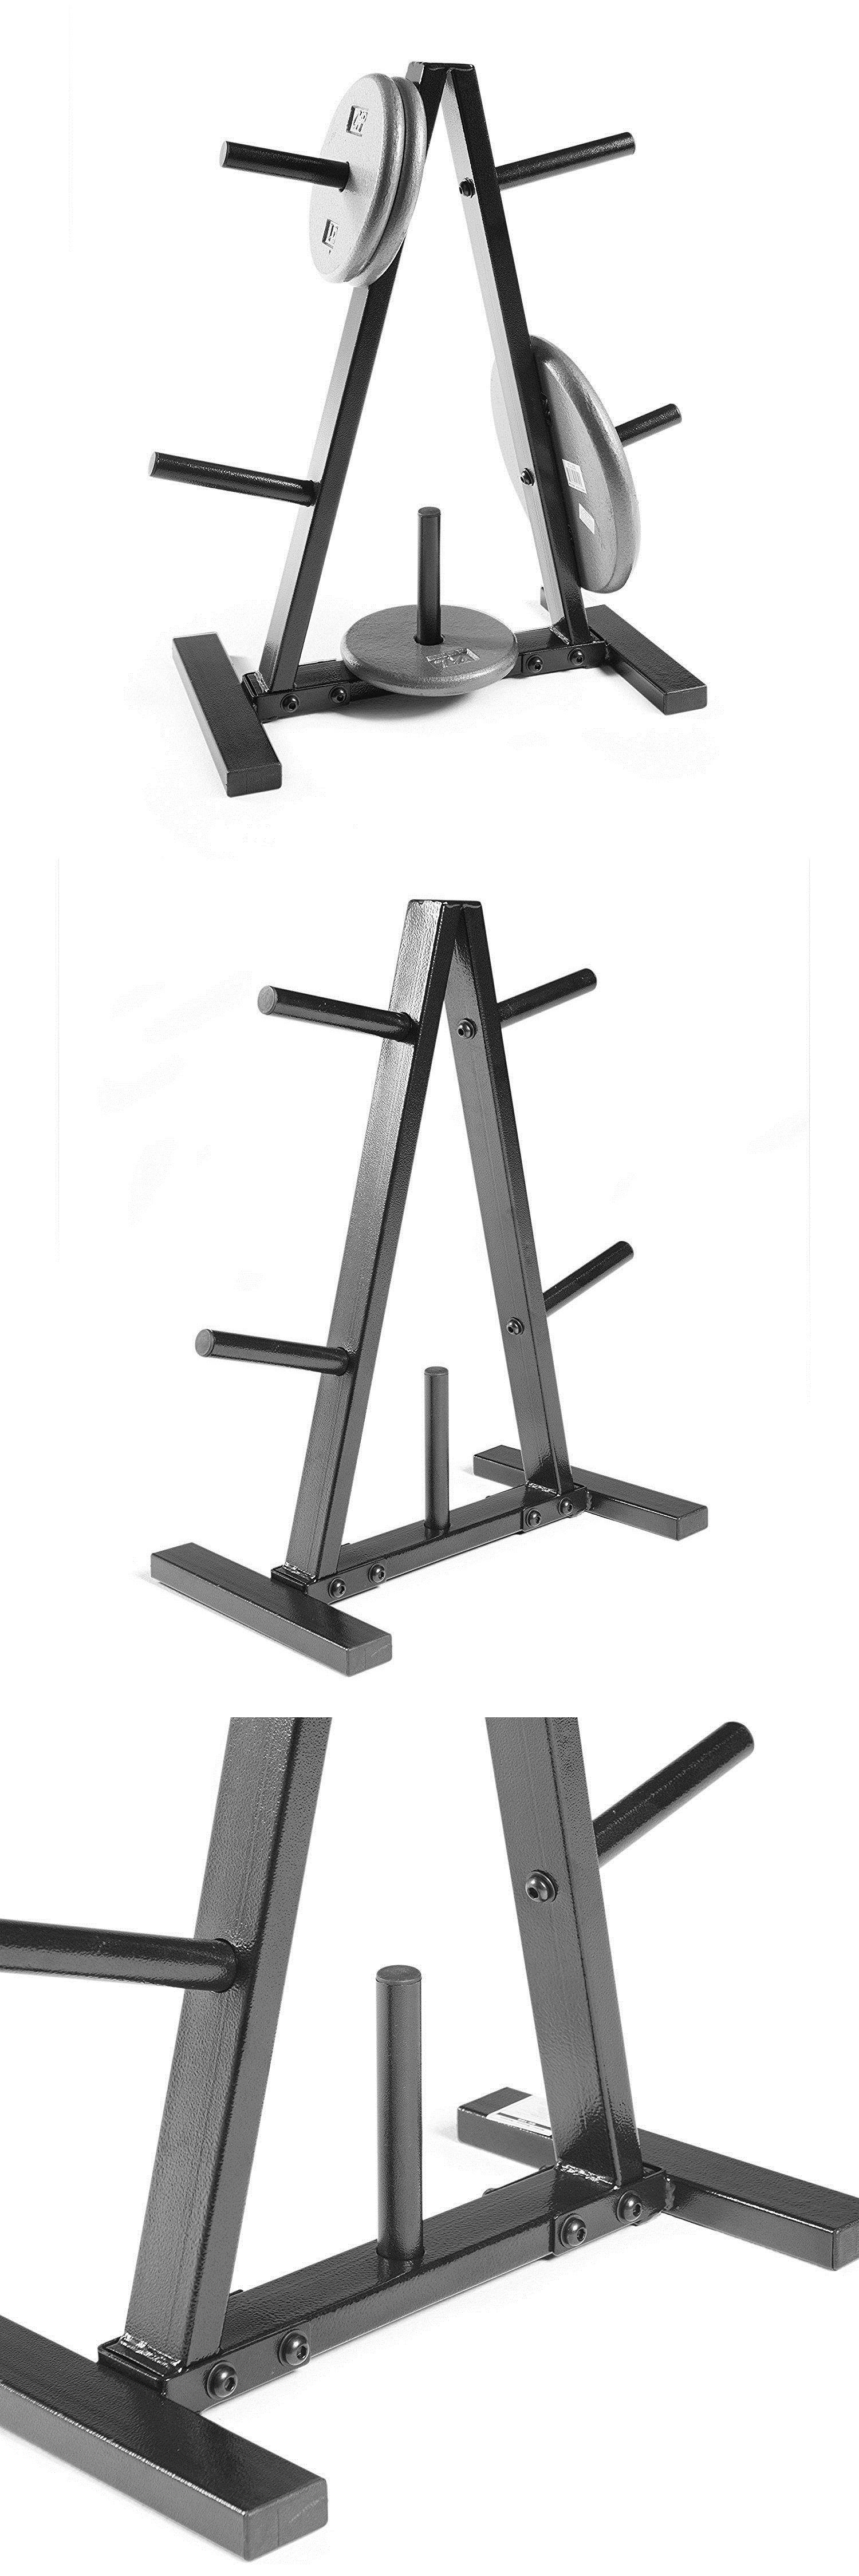 amazon cap with rack com black from dp the hex set barbell lb manufacturer dumbbell storage